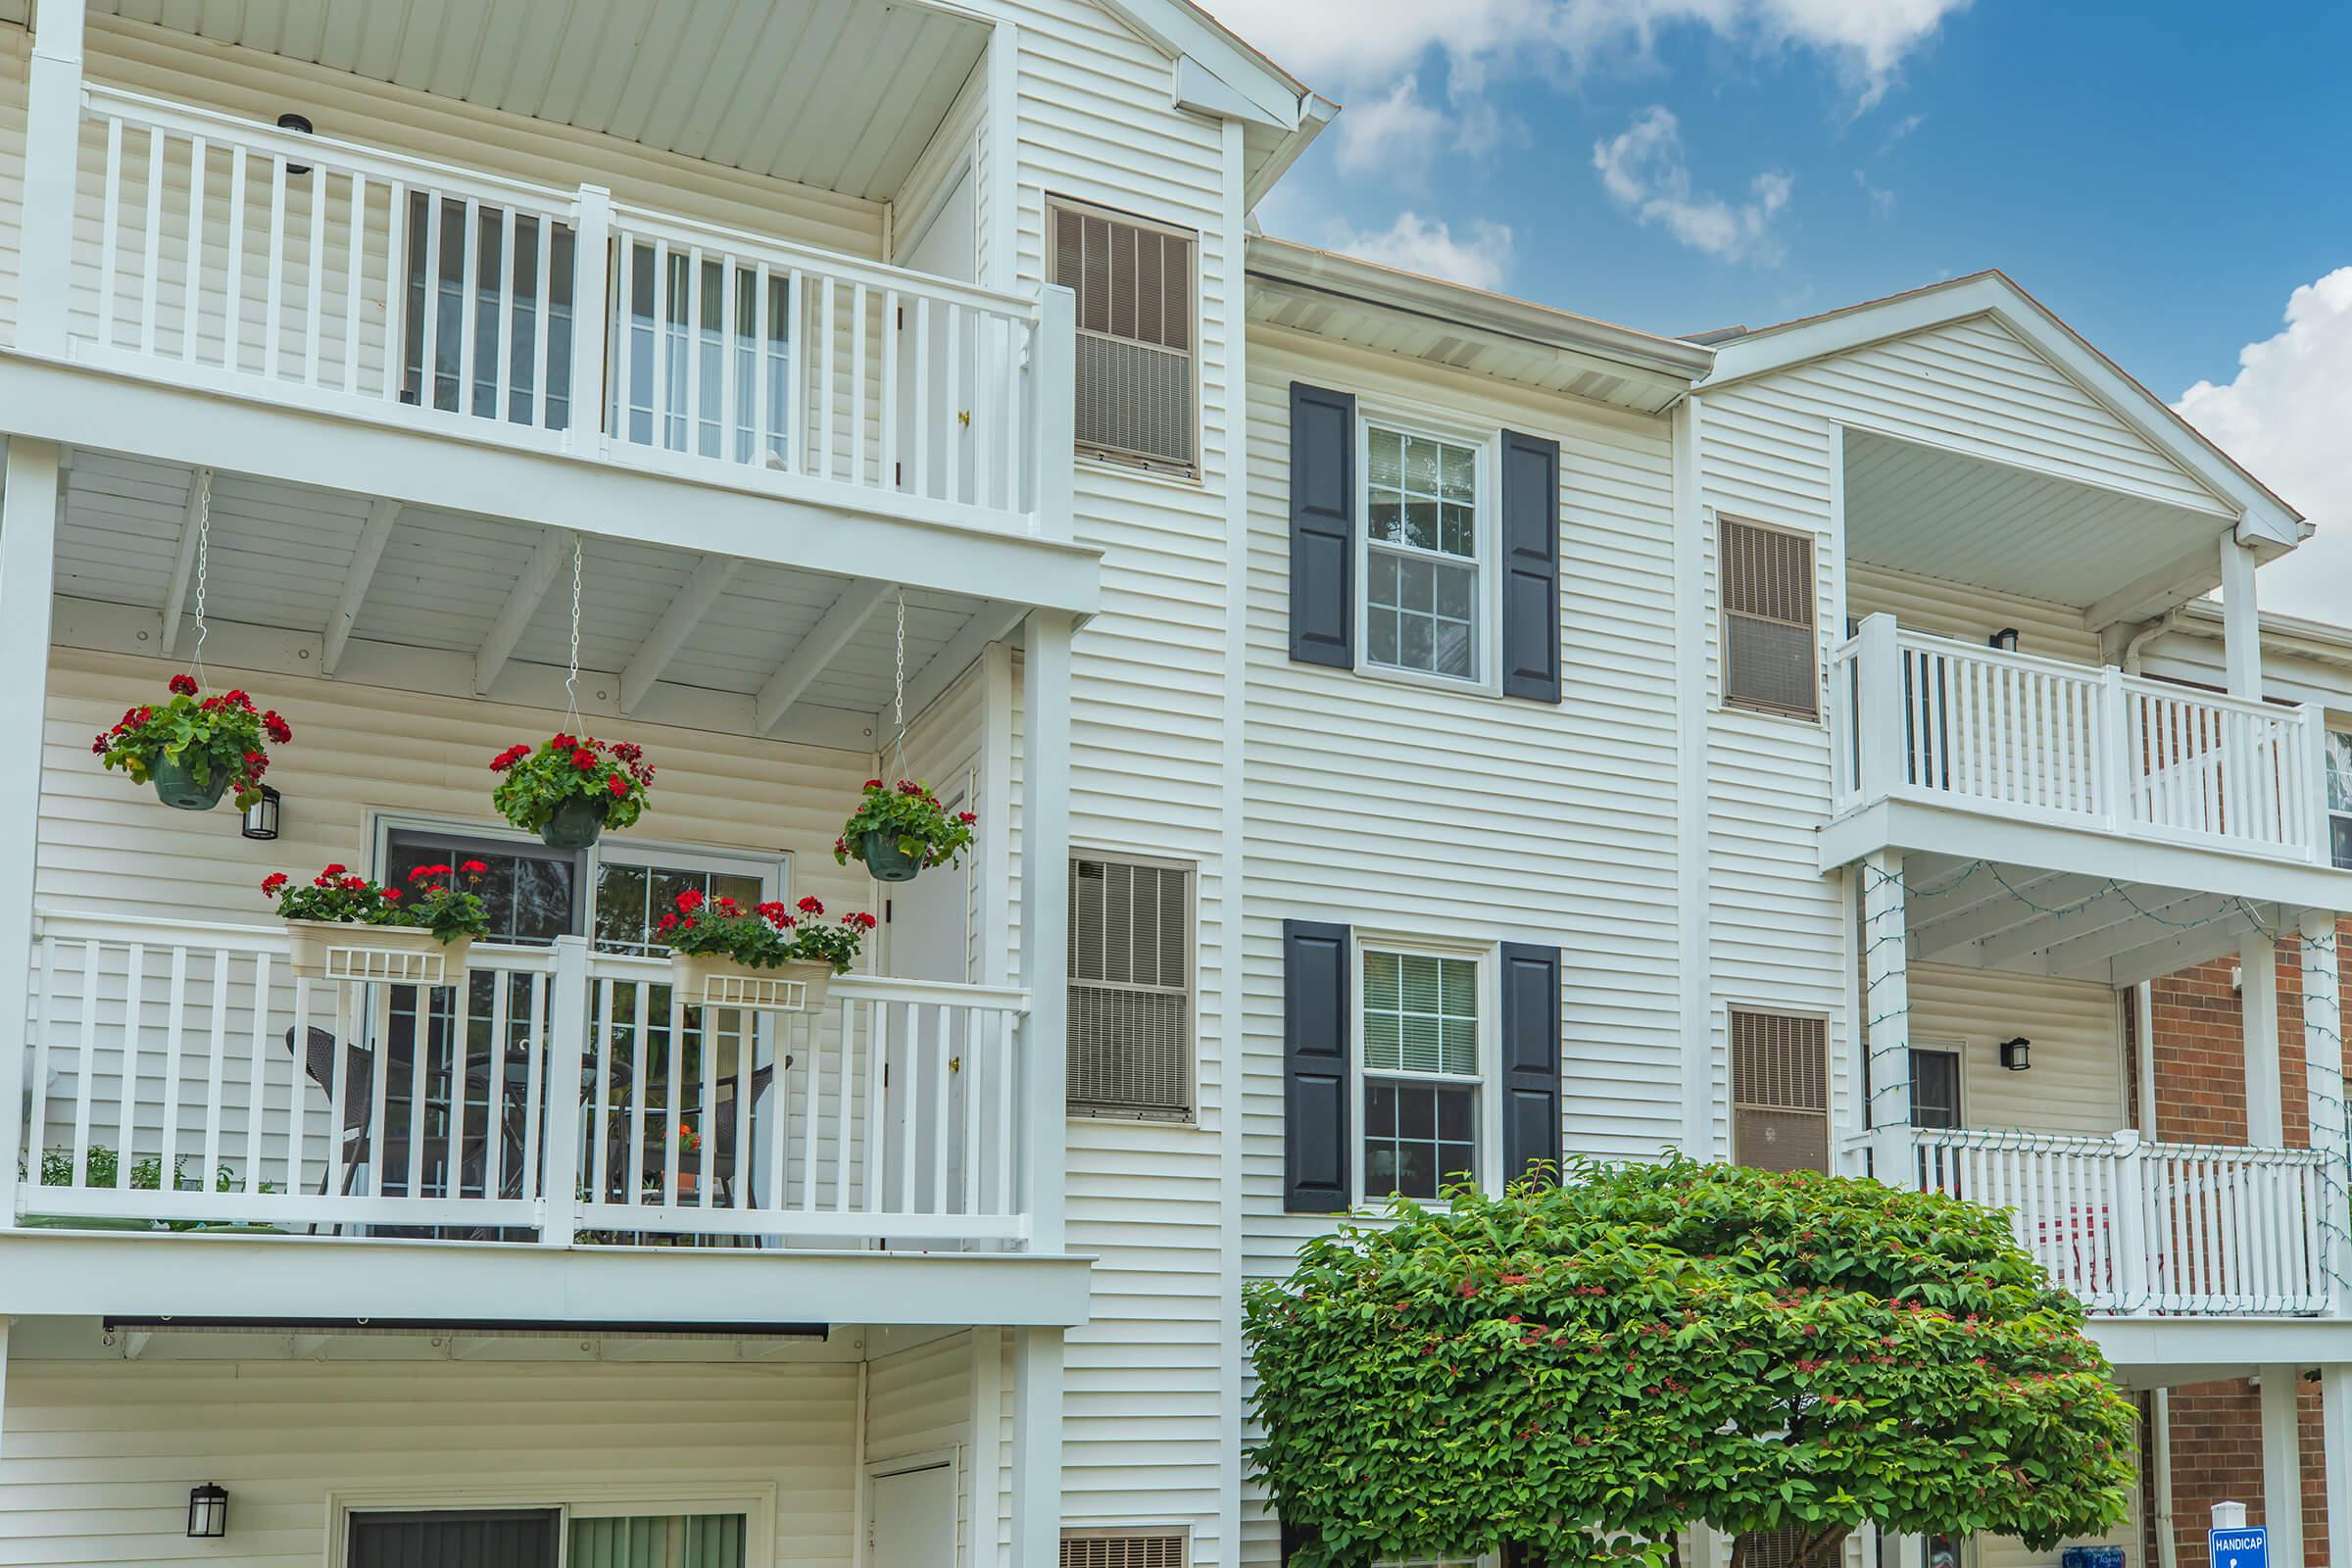 1,2, AND 3 BEDROOM APARTMENTS FOR RENT IN WESTLAKE, OH